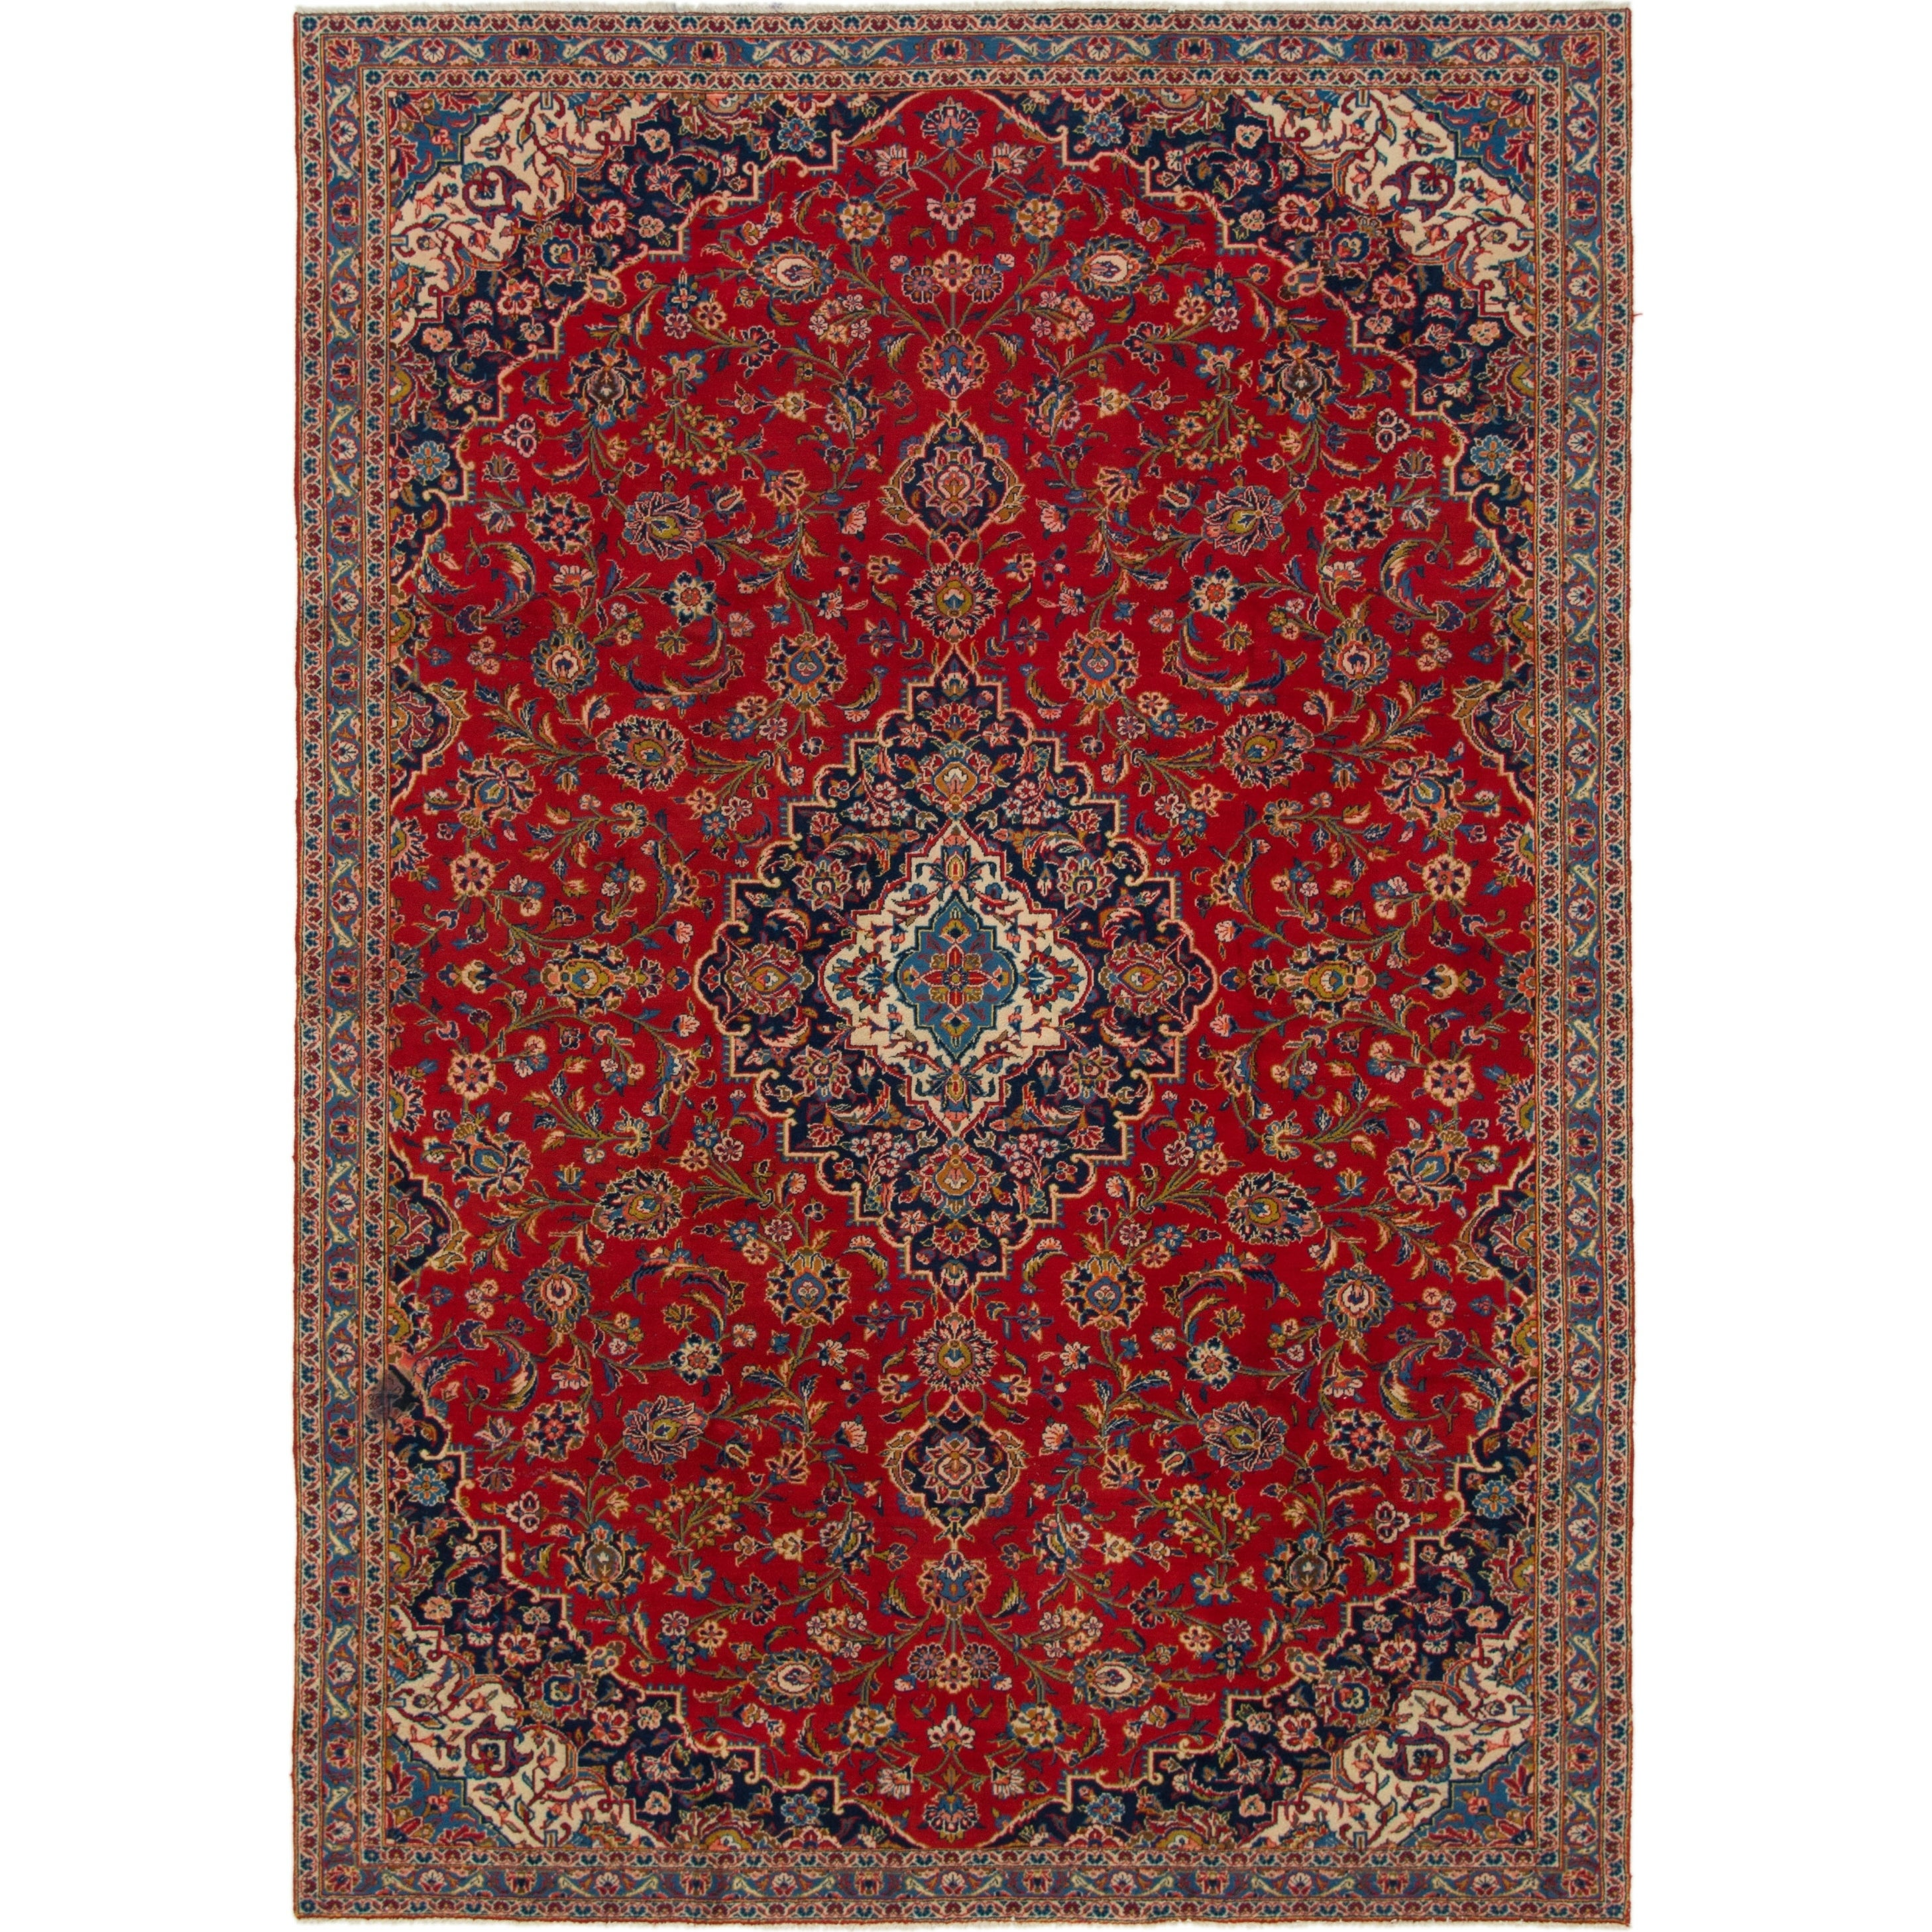 Hand Knotted Kashan Semi Antique Wool Area Rug - 7 5 x 10 8 (Red - 7 5 x 10 8)